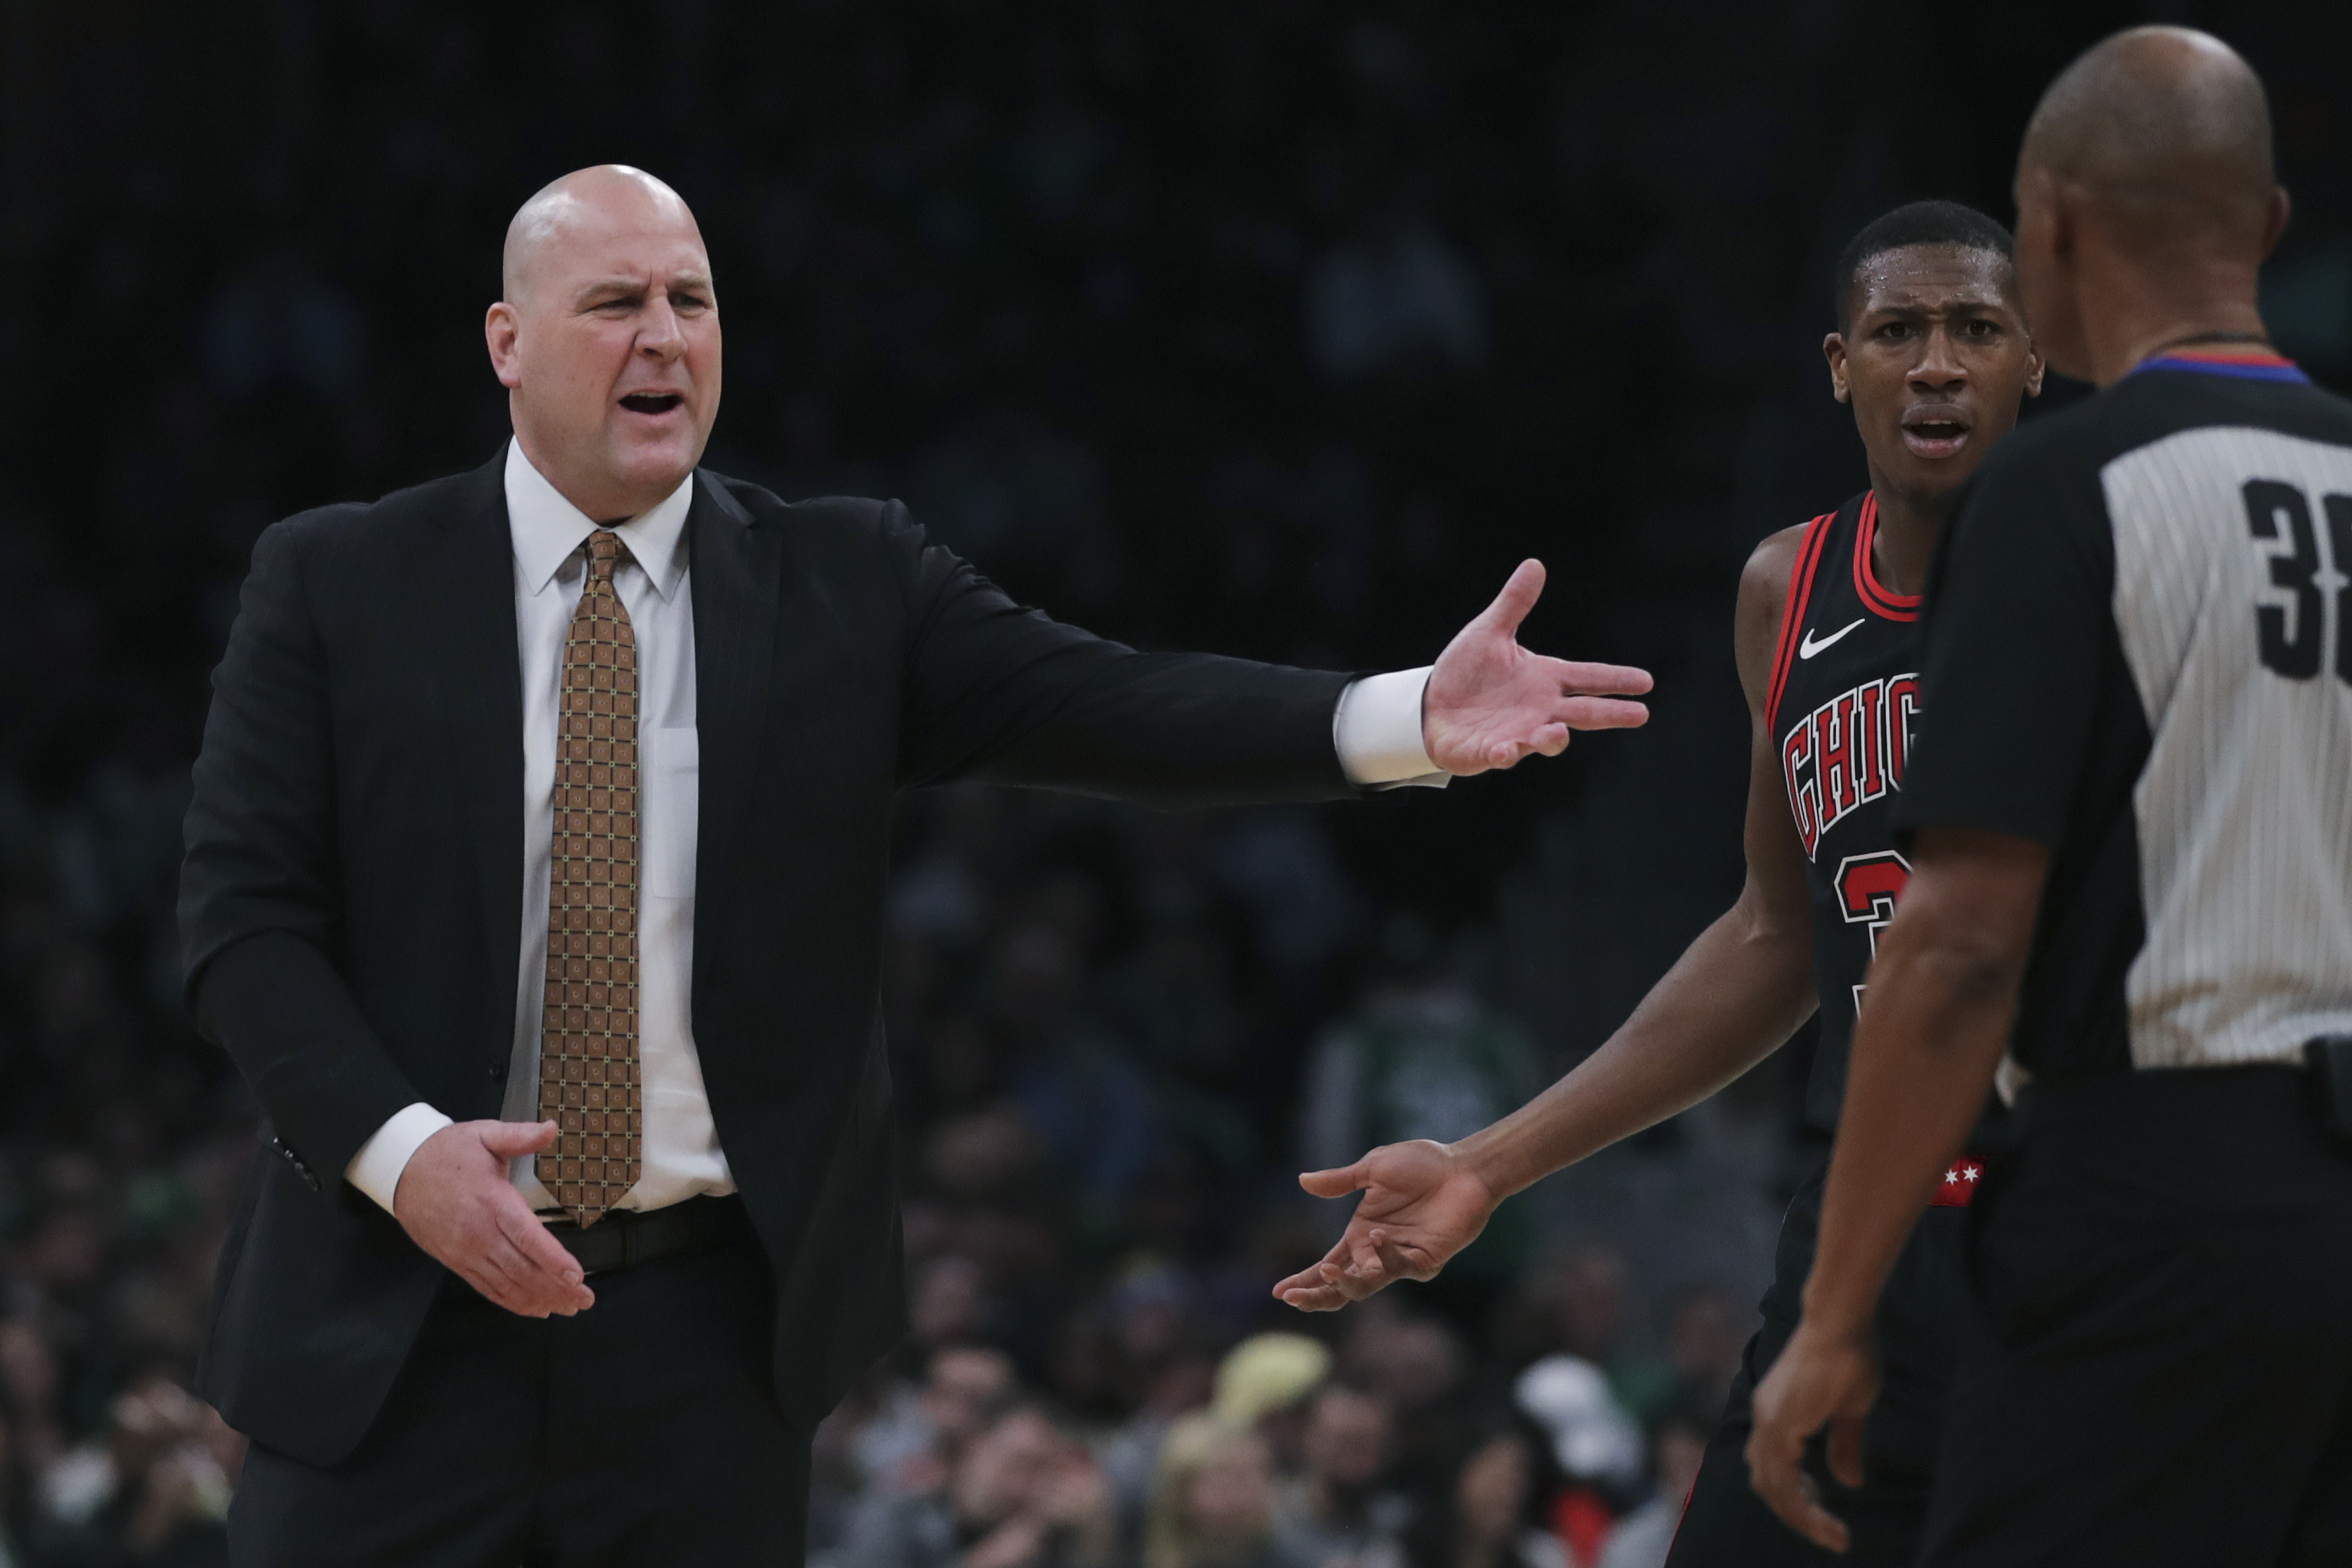 Bulls coach Jim Boylen argues a call during the first half of Monday's loss to the Celtics in Boston.